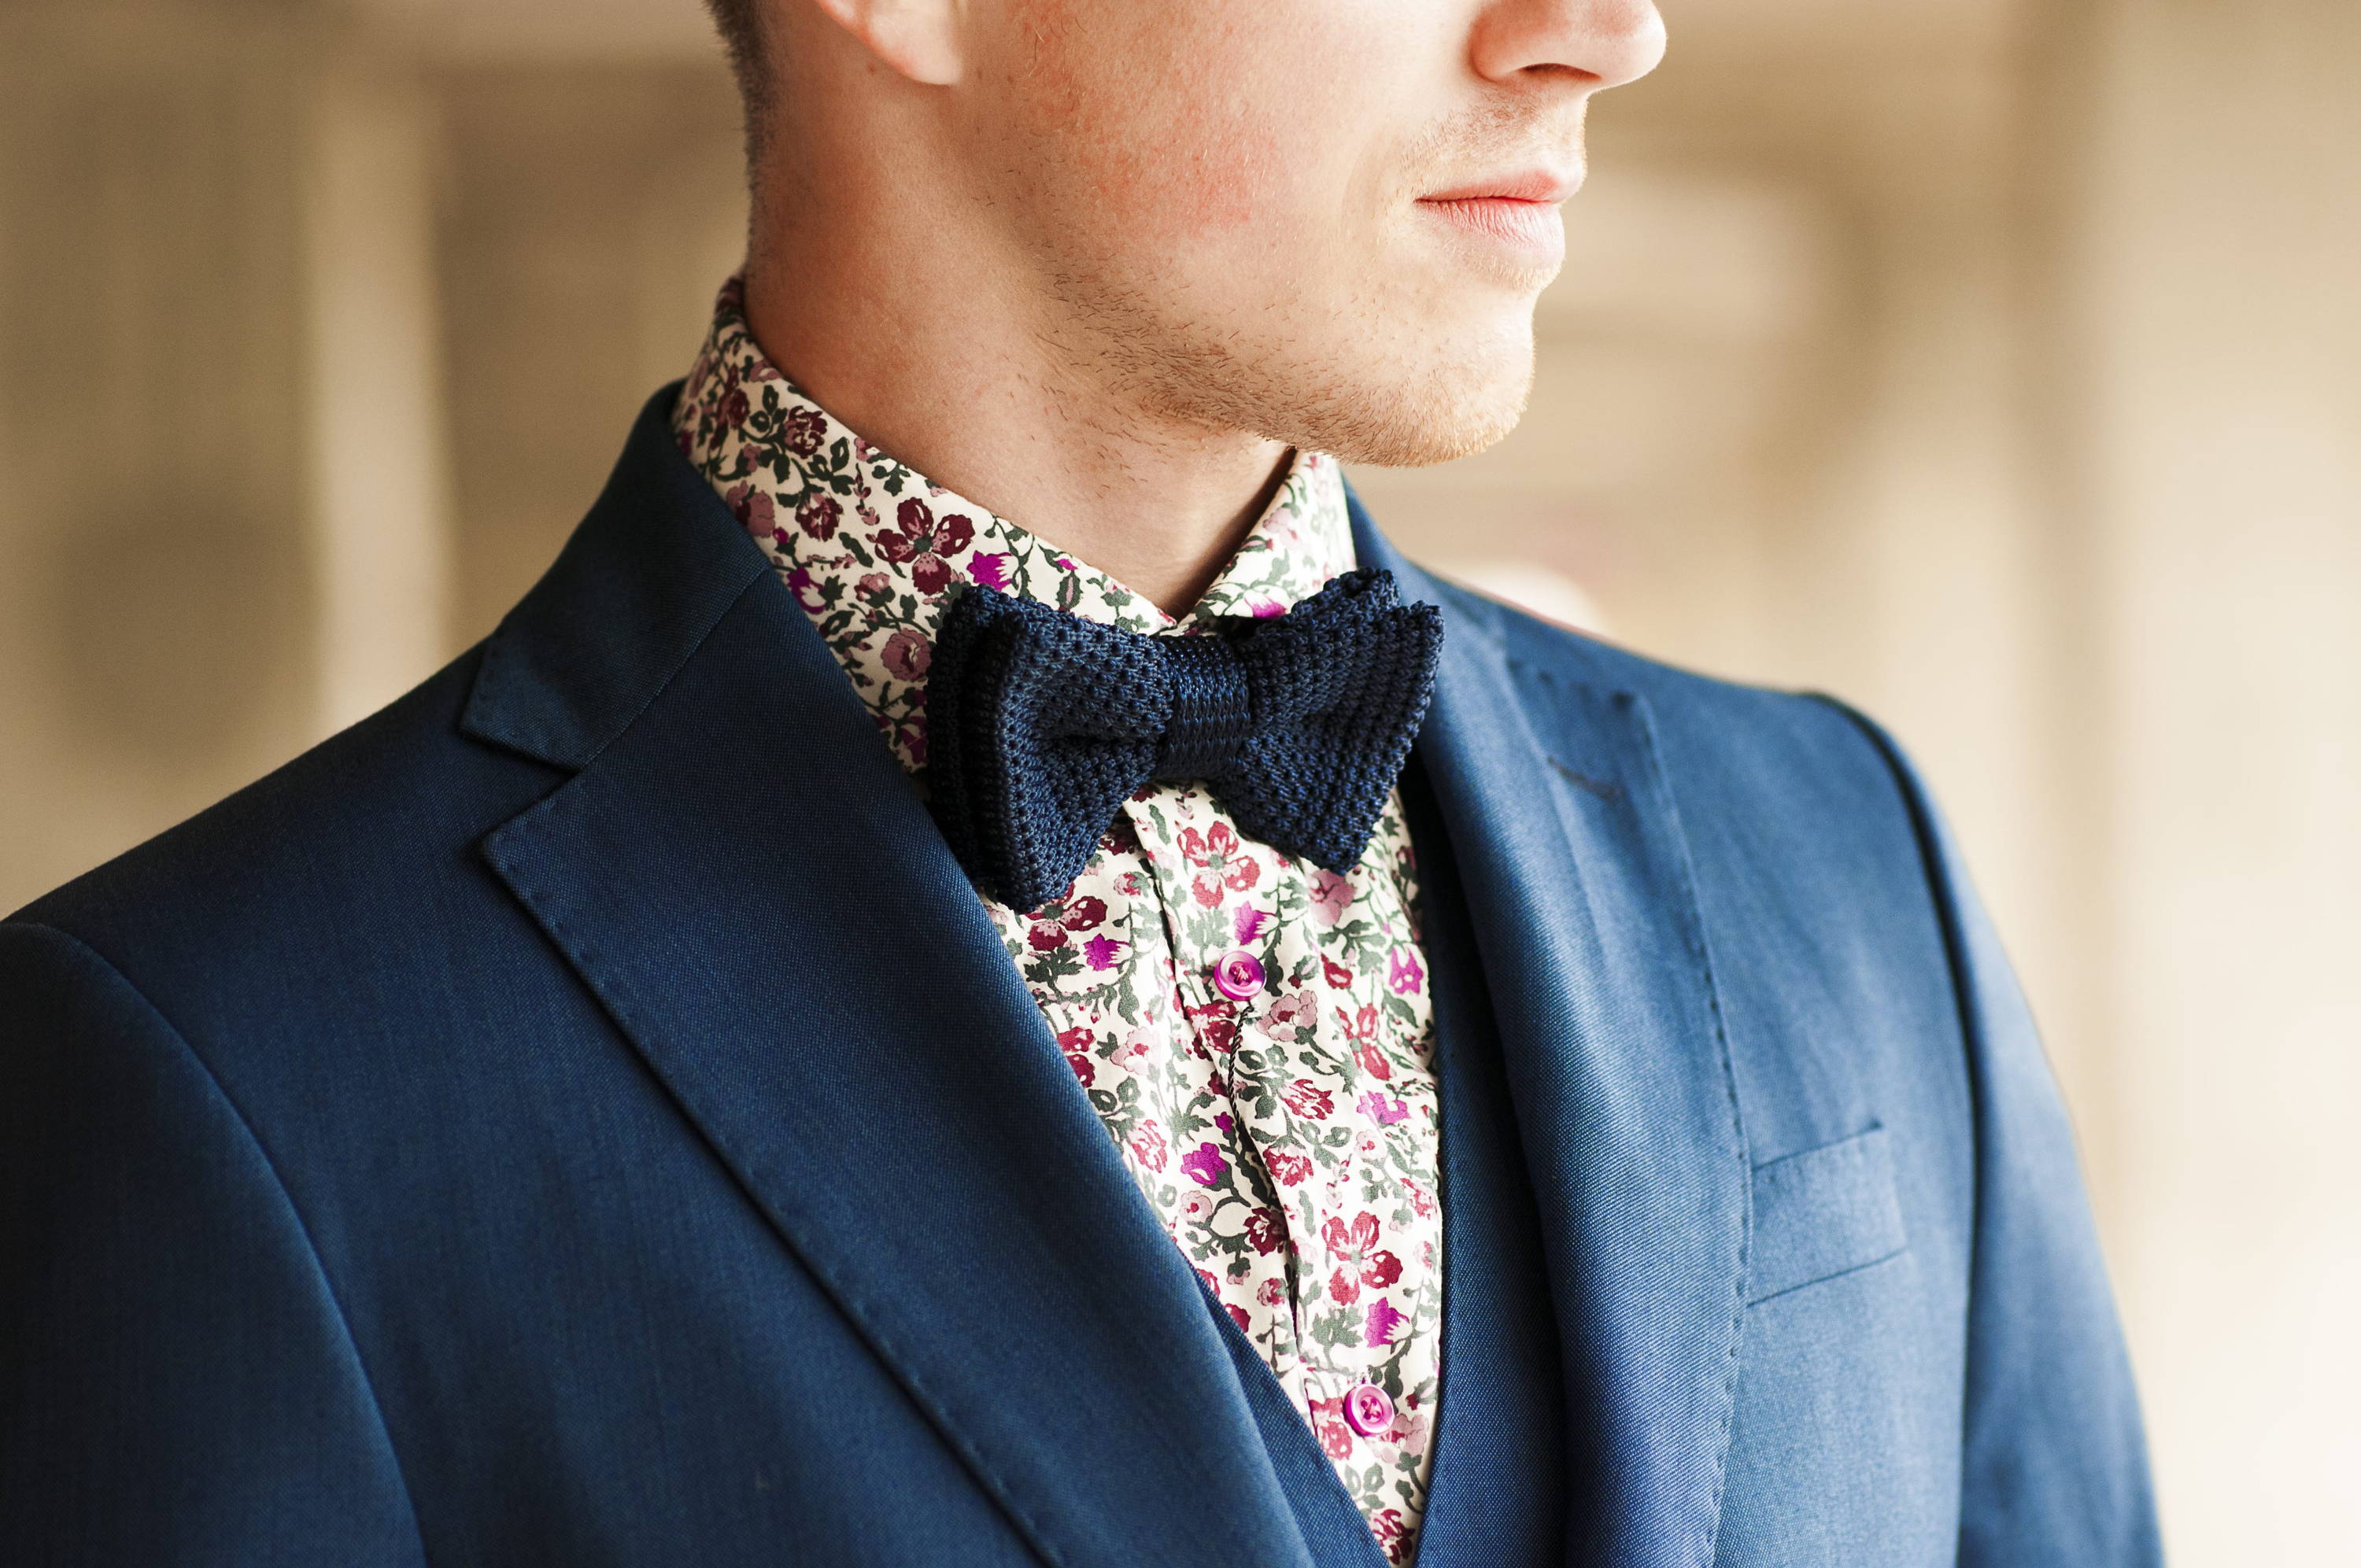 Man wears quirky style floral shirt and textured bow tie